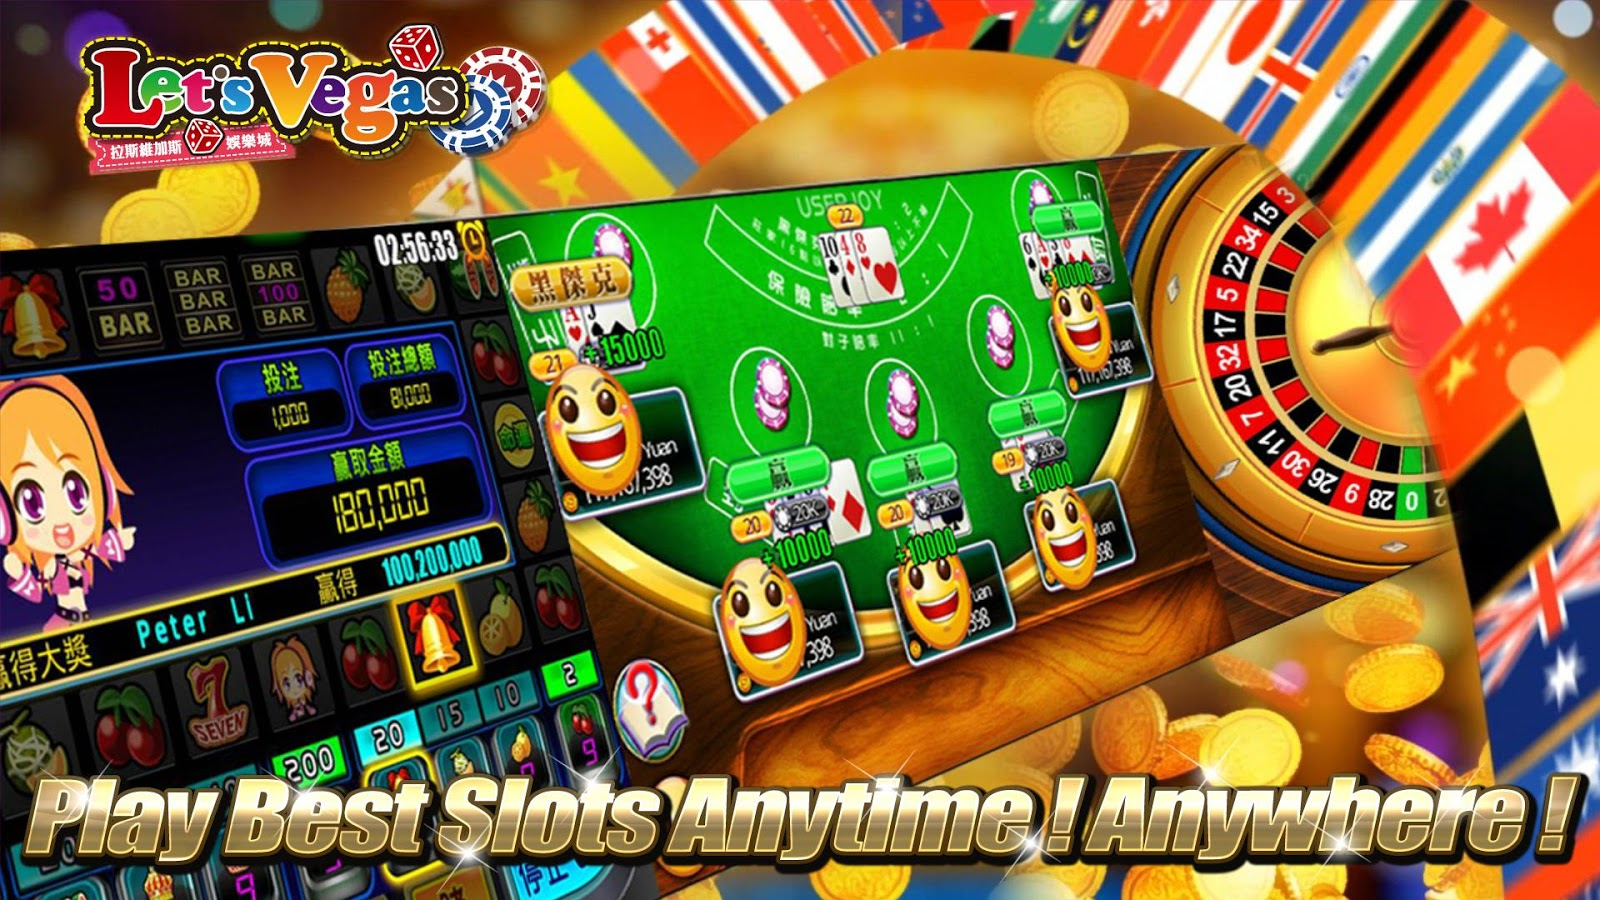 Let's Vegas Slots Screenshot 3